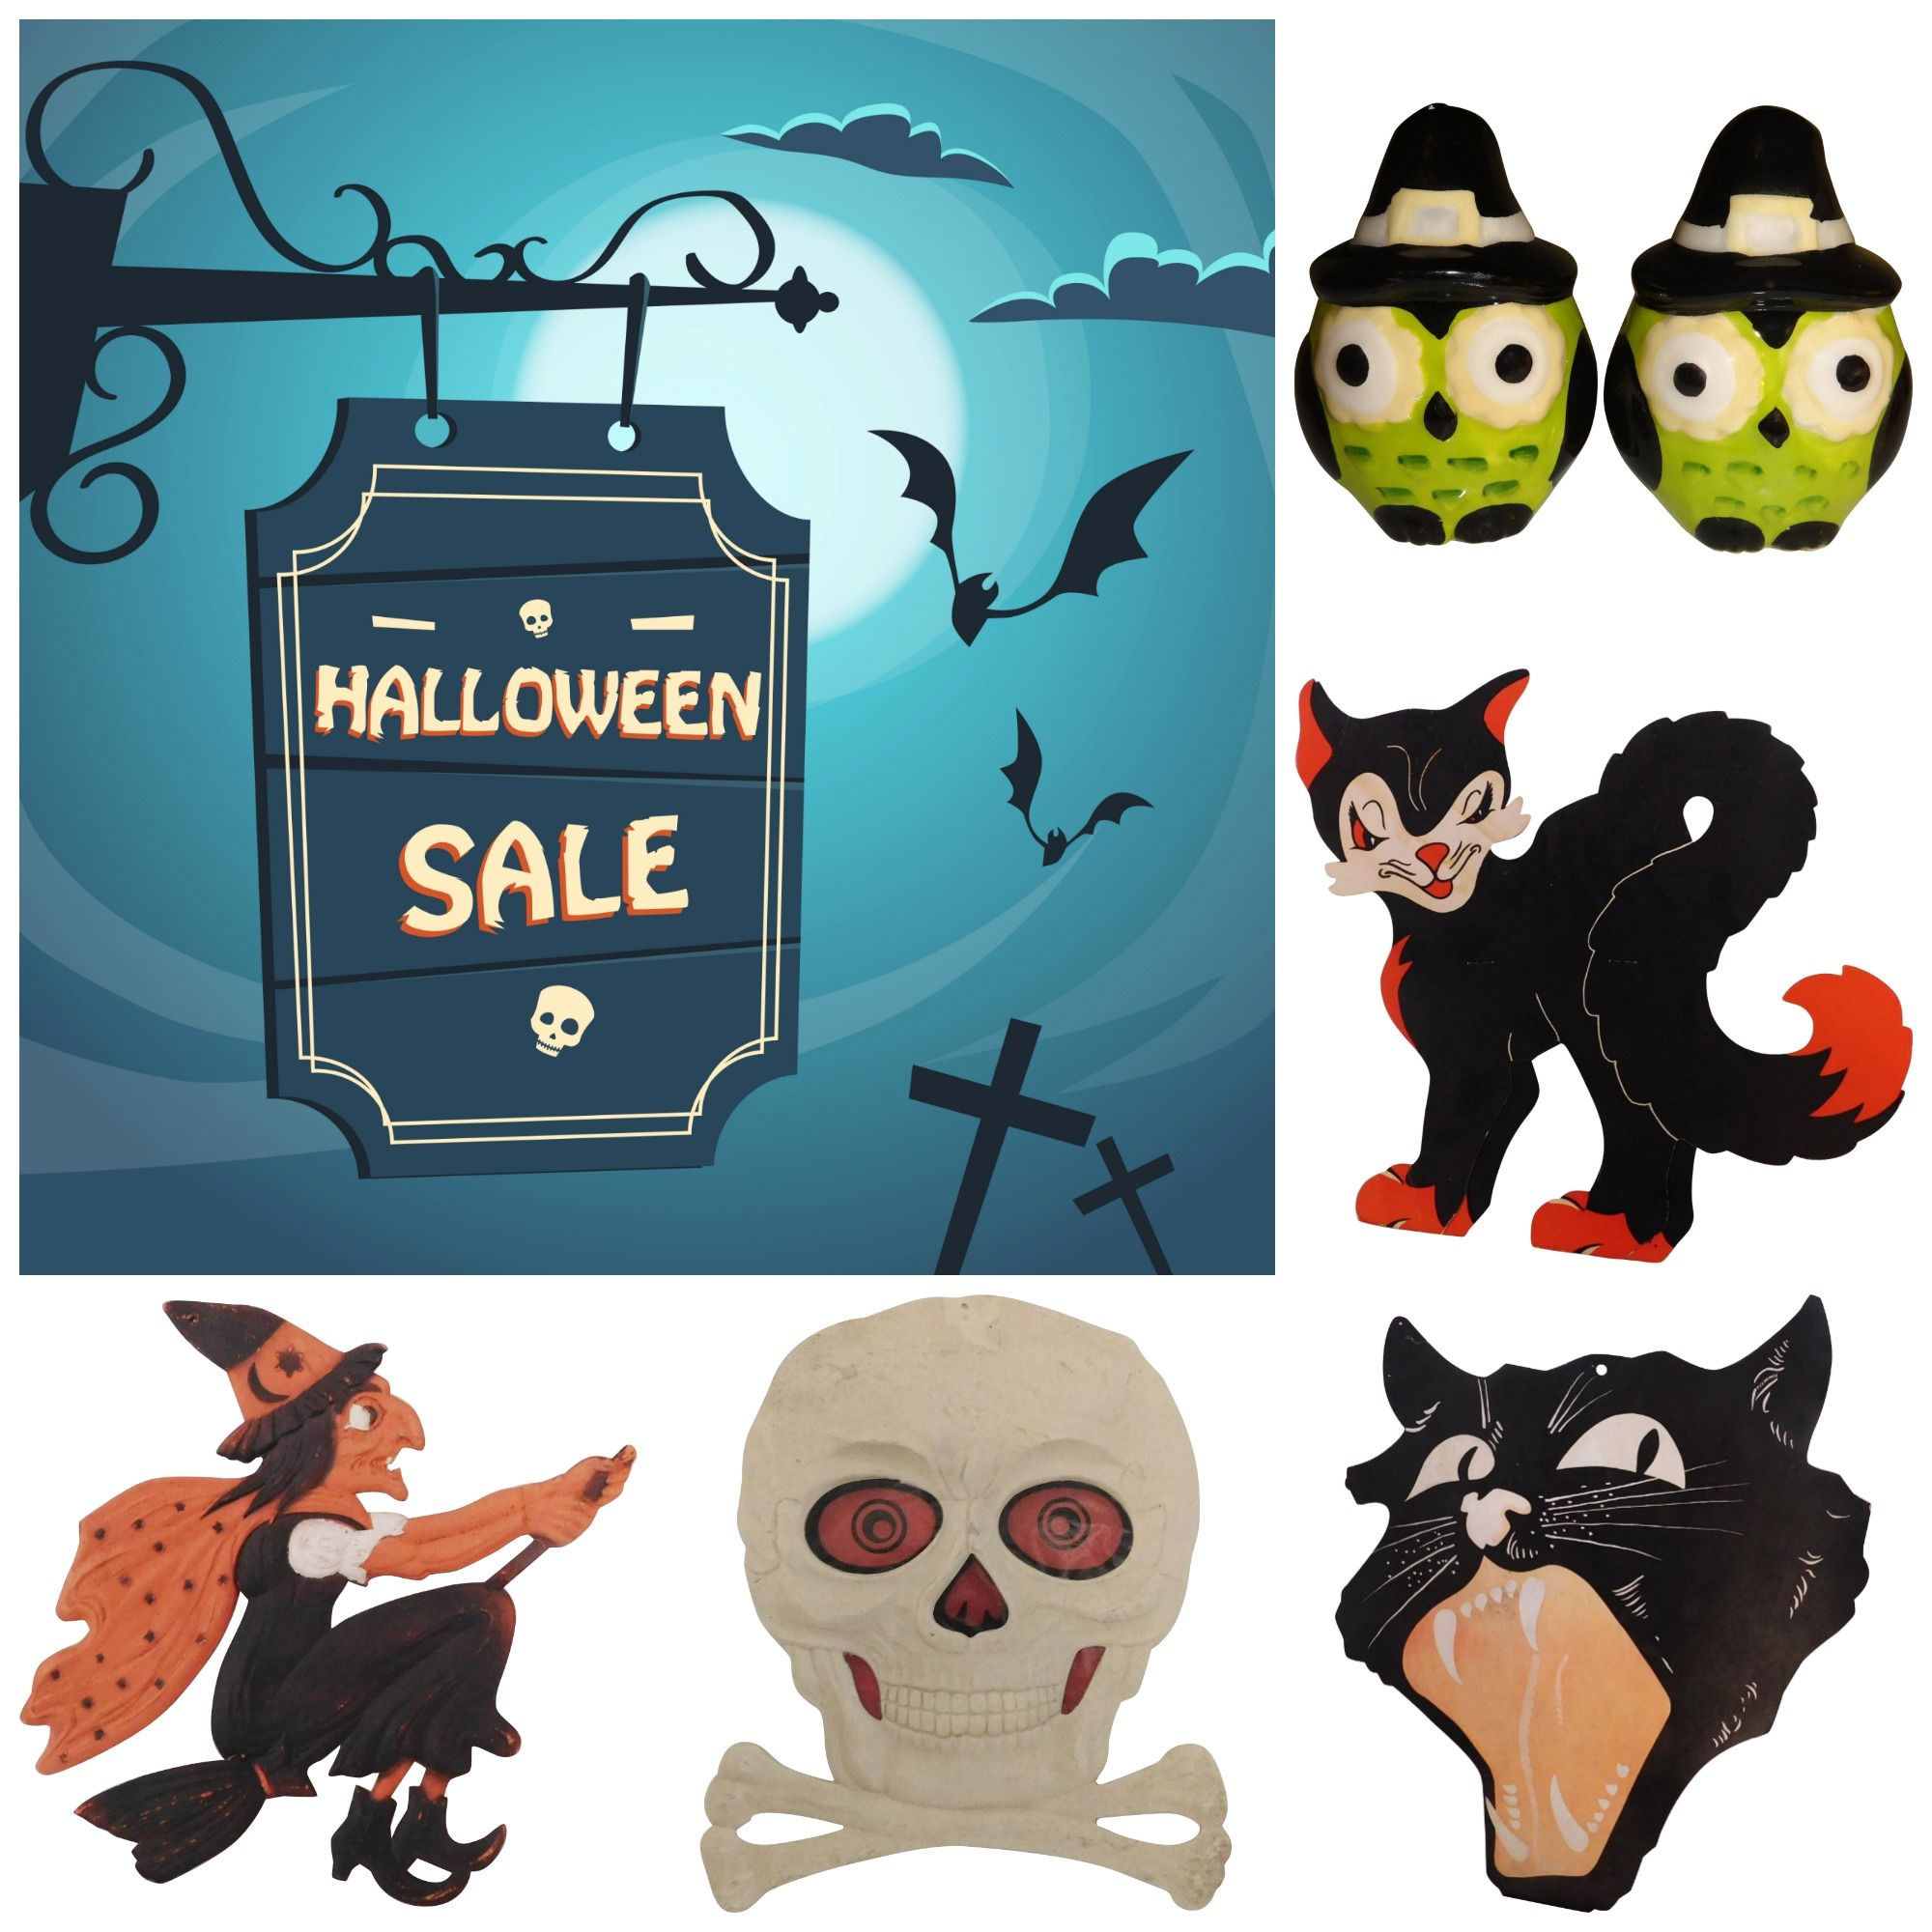 Vintage Halloween Decorations At Ruby Lane Rubylanecom Rubylane Witches Goblins